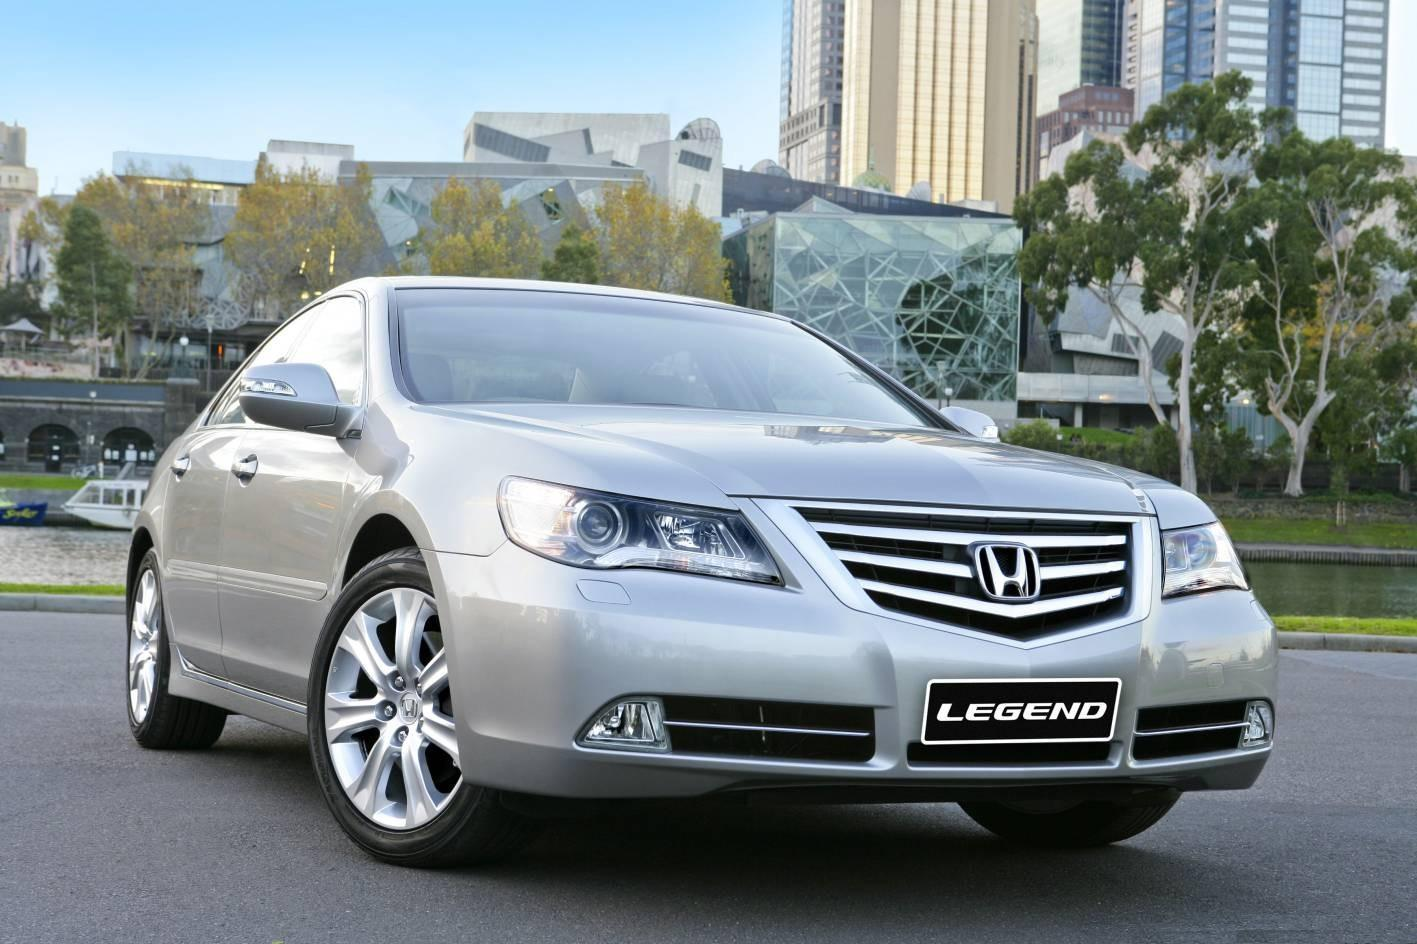 Honda Legend: 09 фото